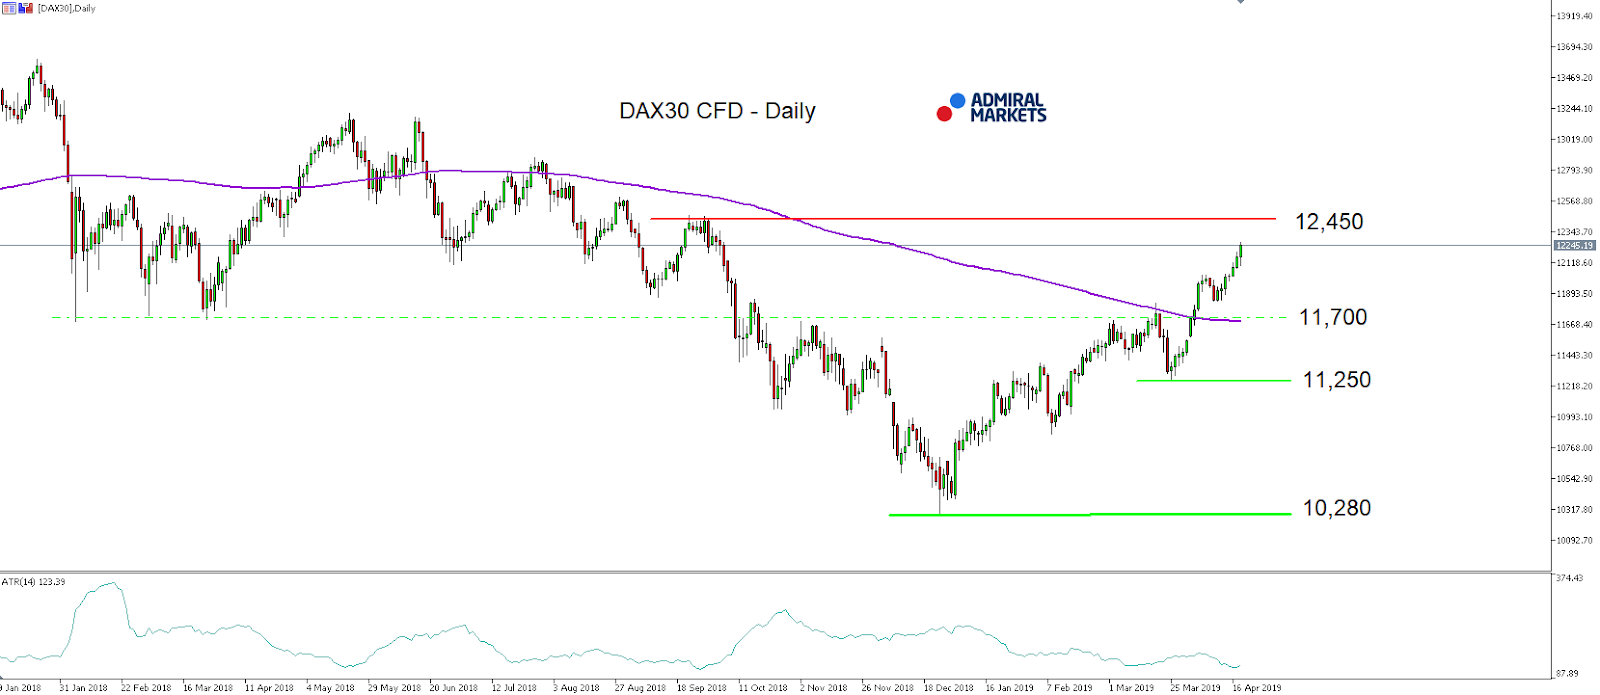 DAX30 CFD index daily chart